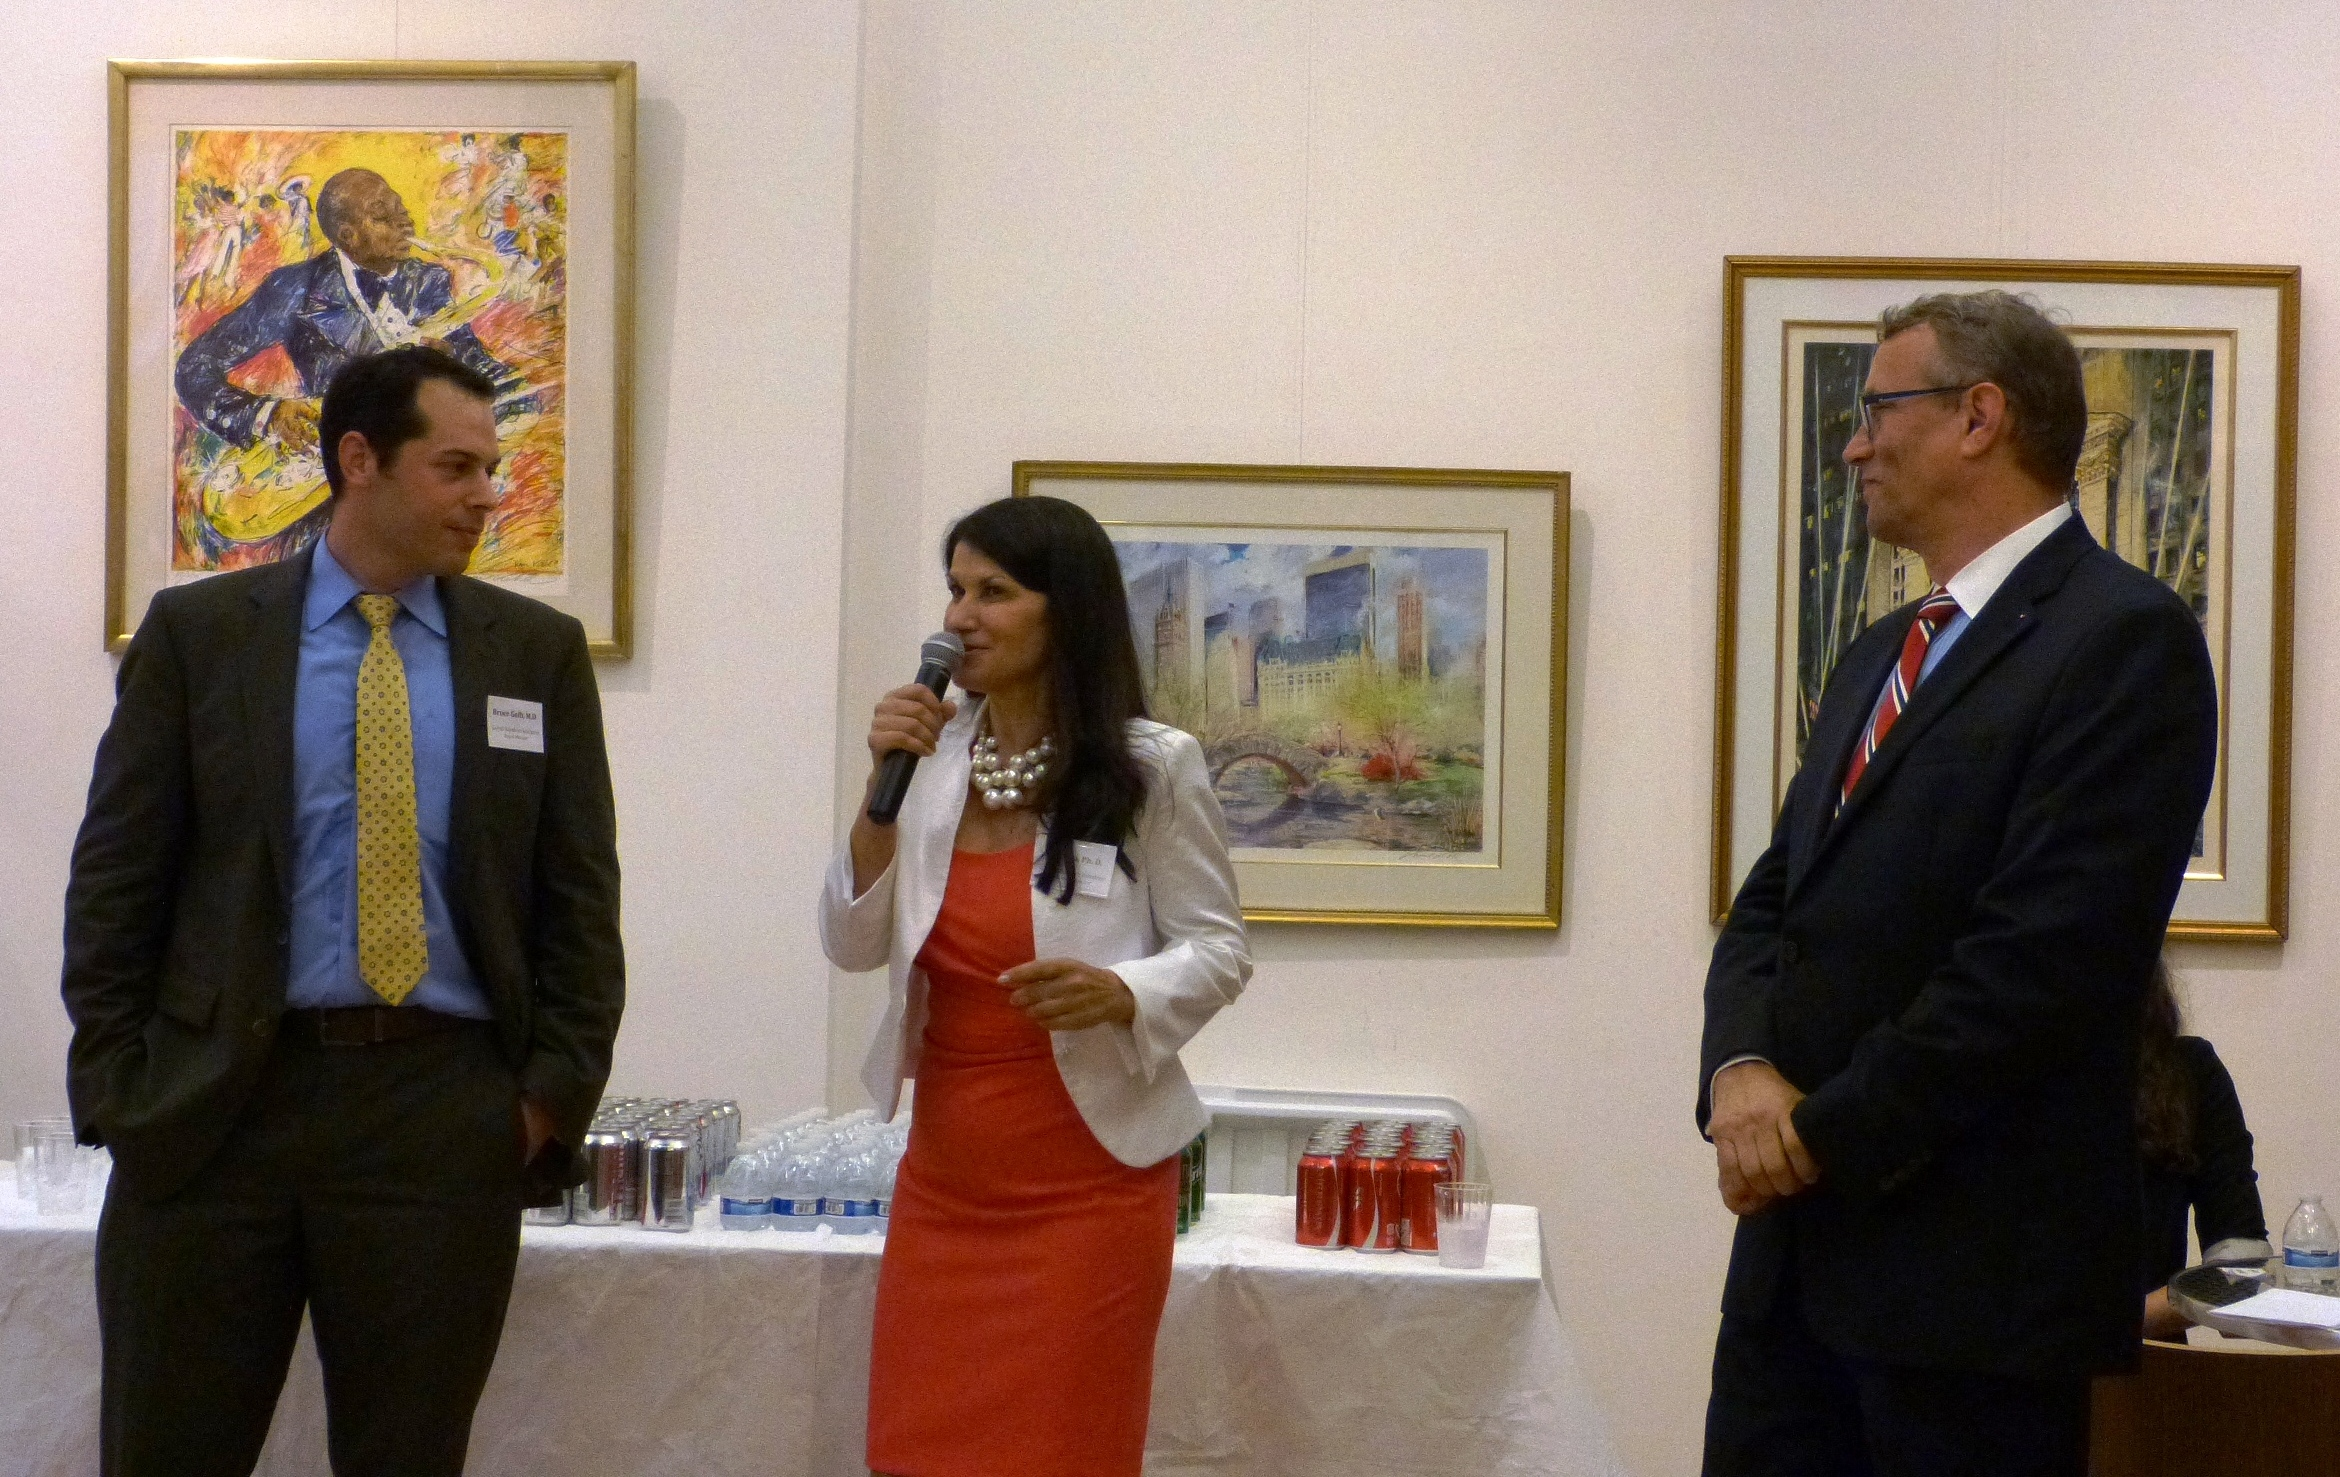 From left to right: Dr. Bruce Gelb, Dr. Ana Lita, and the Consul General of the Czech Republic, Mr. Martin Dvorak, give opening remarks at a cocktail party at Bohemian National Hall, kicking off the start of the Global Bioethics Initiative Summer School.